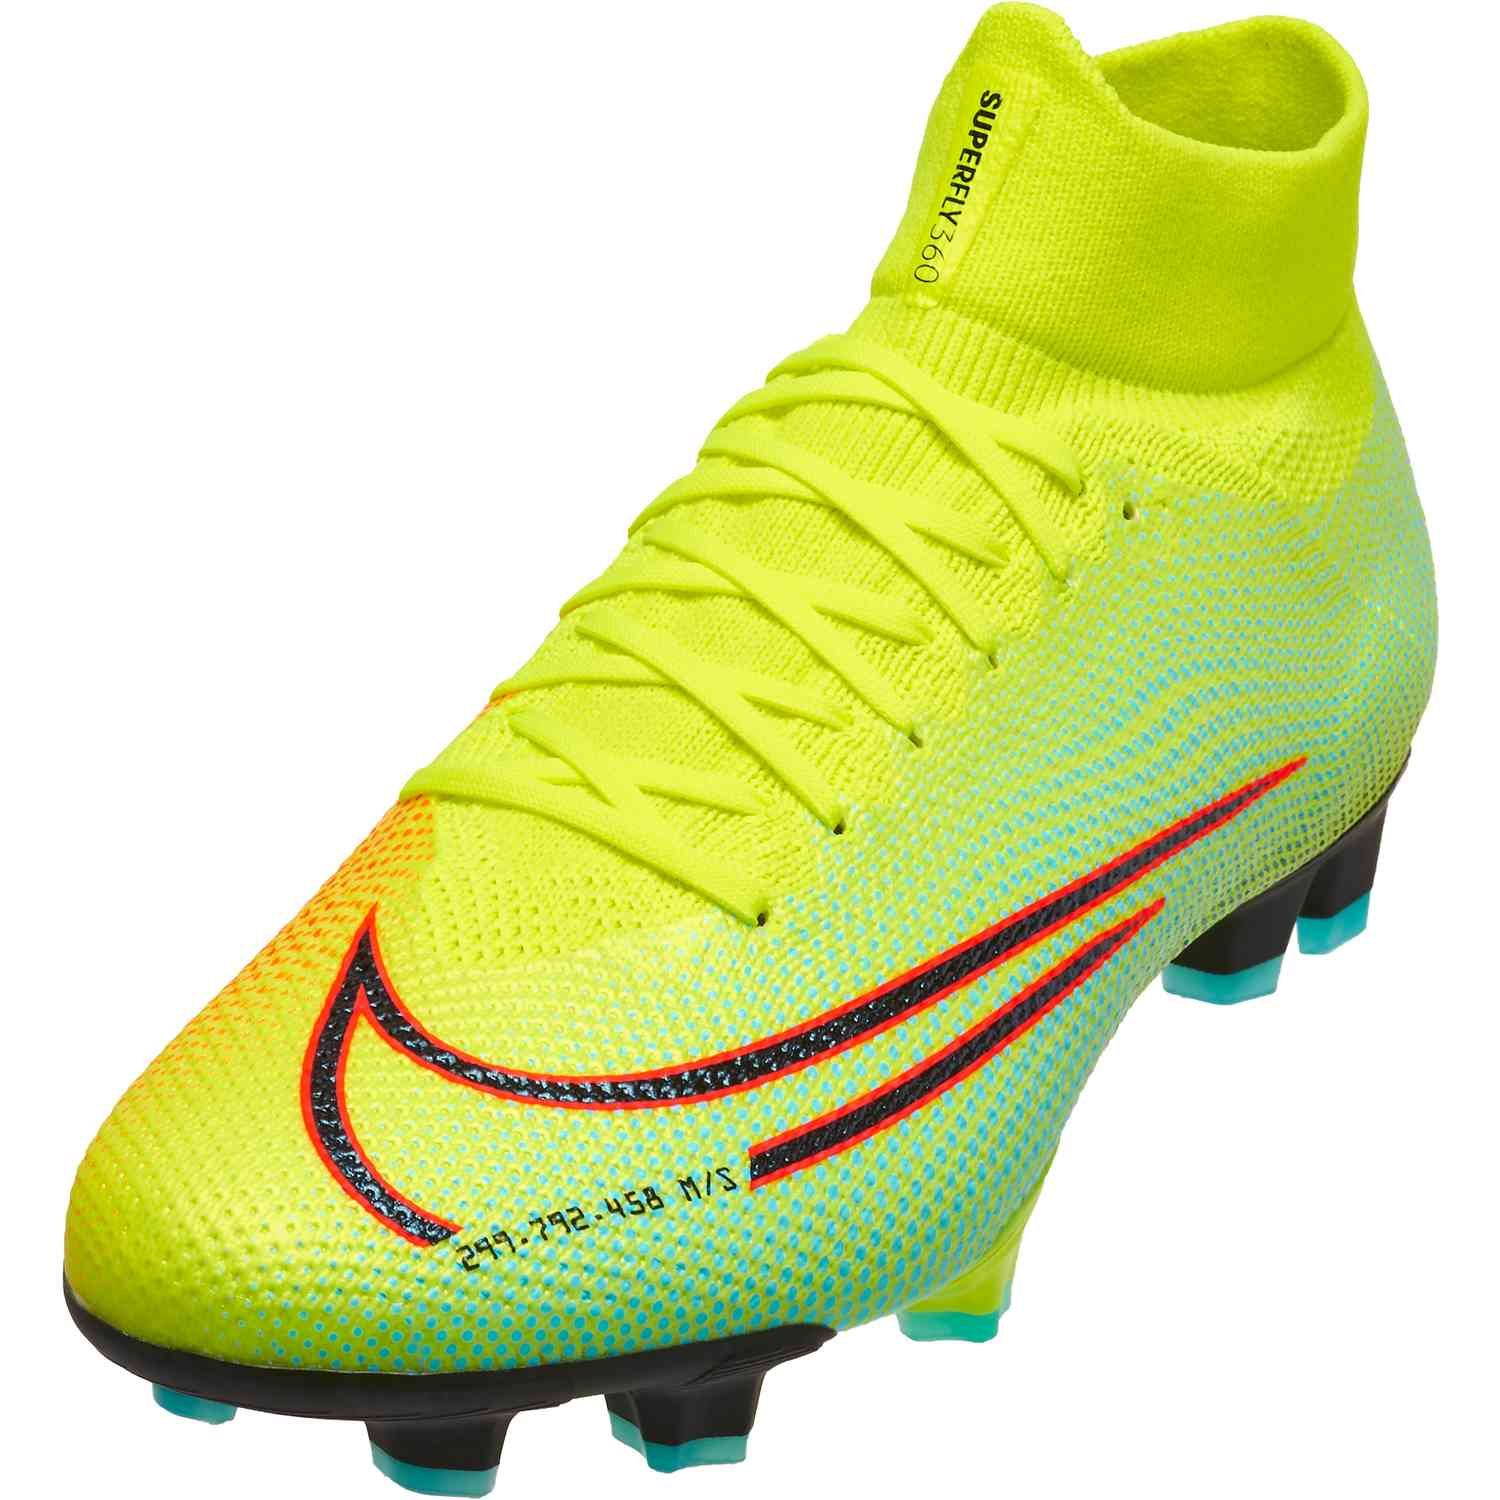 Nike Mds Mercurial Superfly 7 Pro Fg Lemon Venom In 2020 Girls Soccer Cleats Soccer Cleats Soccer Cleats Nike Mercurial